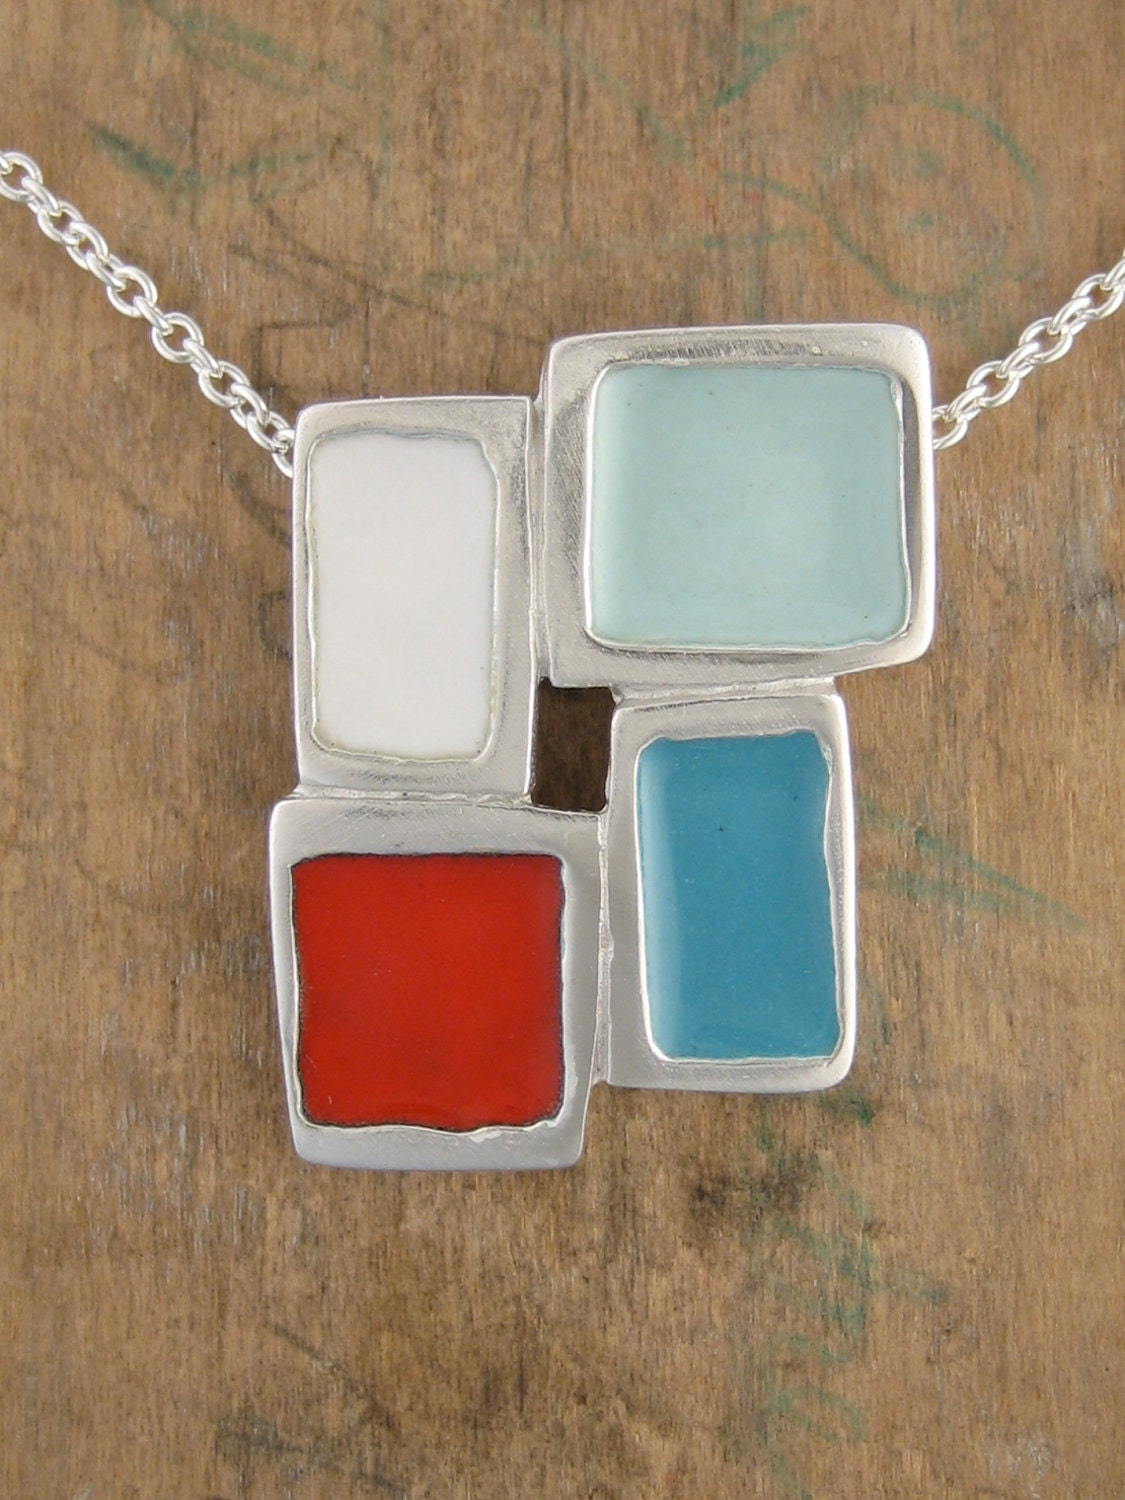 Puremodern Foursquare Necklace - Summer Colors